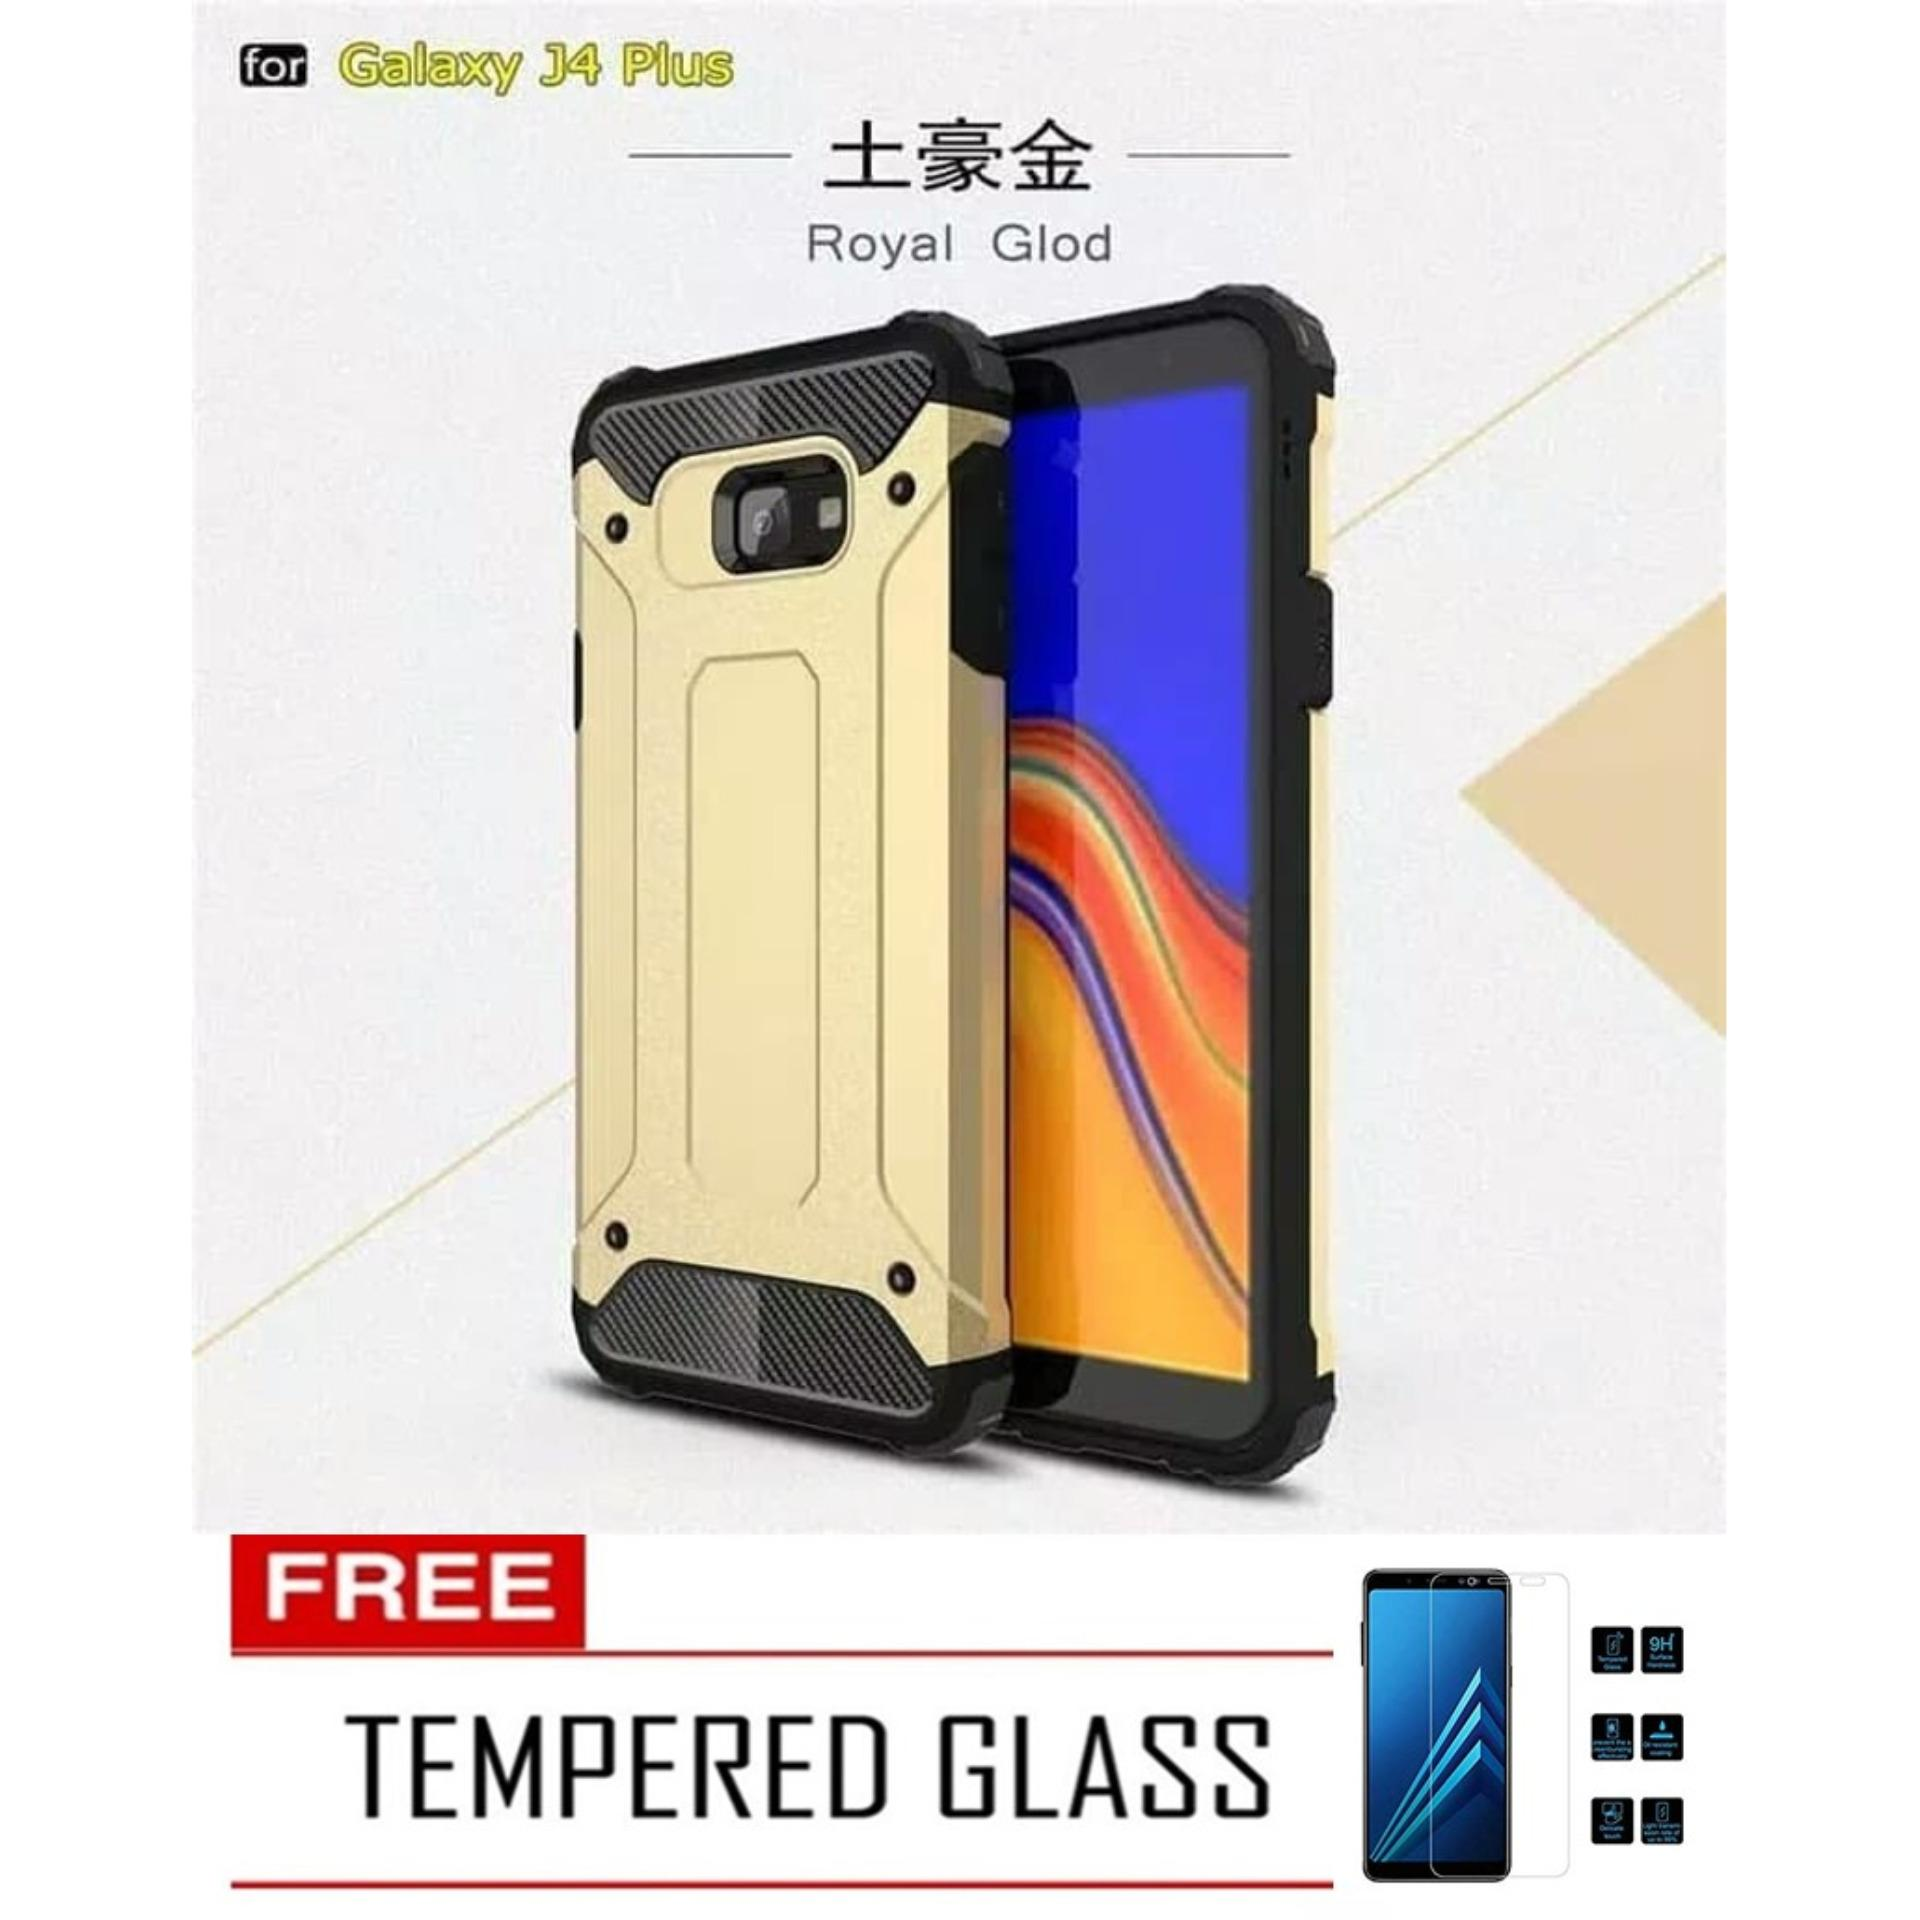 Case Hard Cover Robot Shockproof Armor For Samsung Galaxy J4 Plus 2018 - Gold FREE Tempered